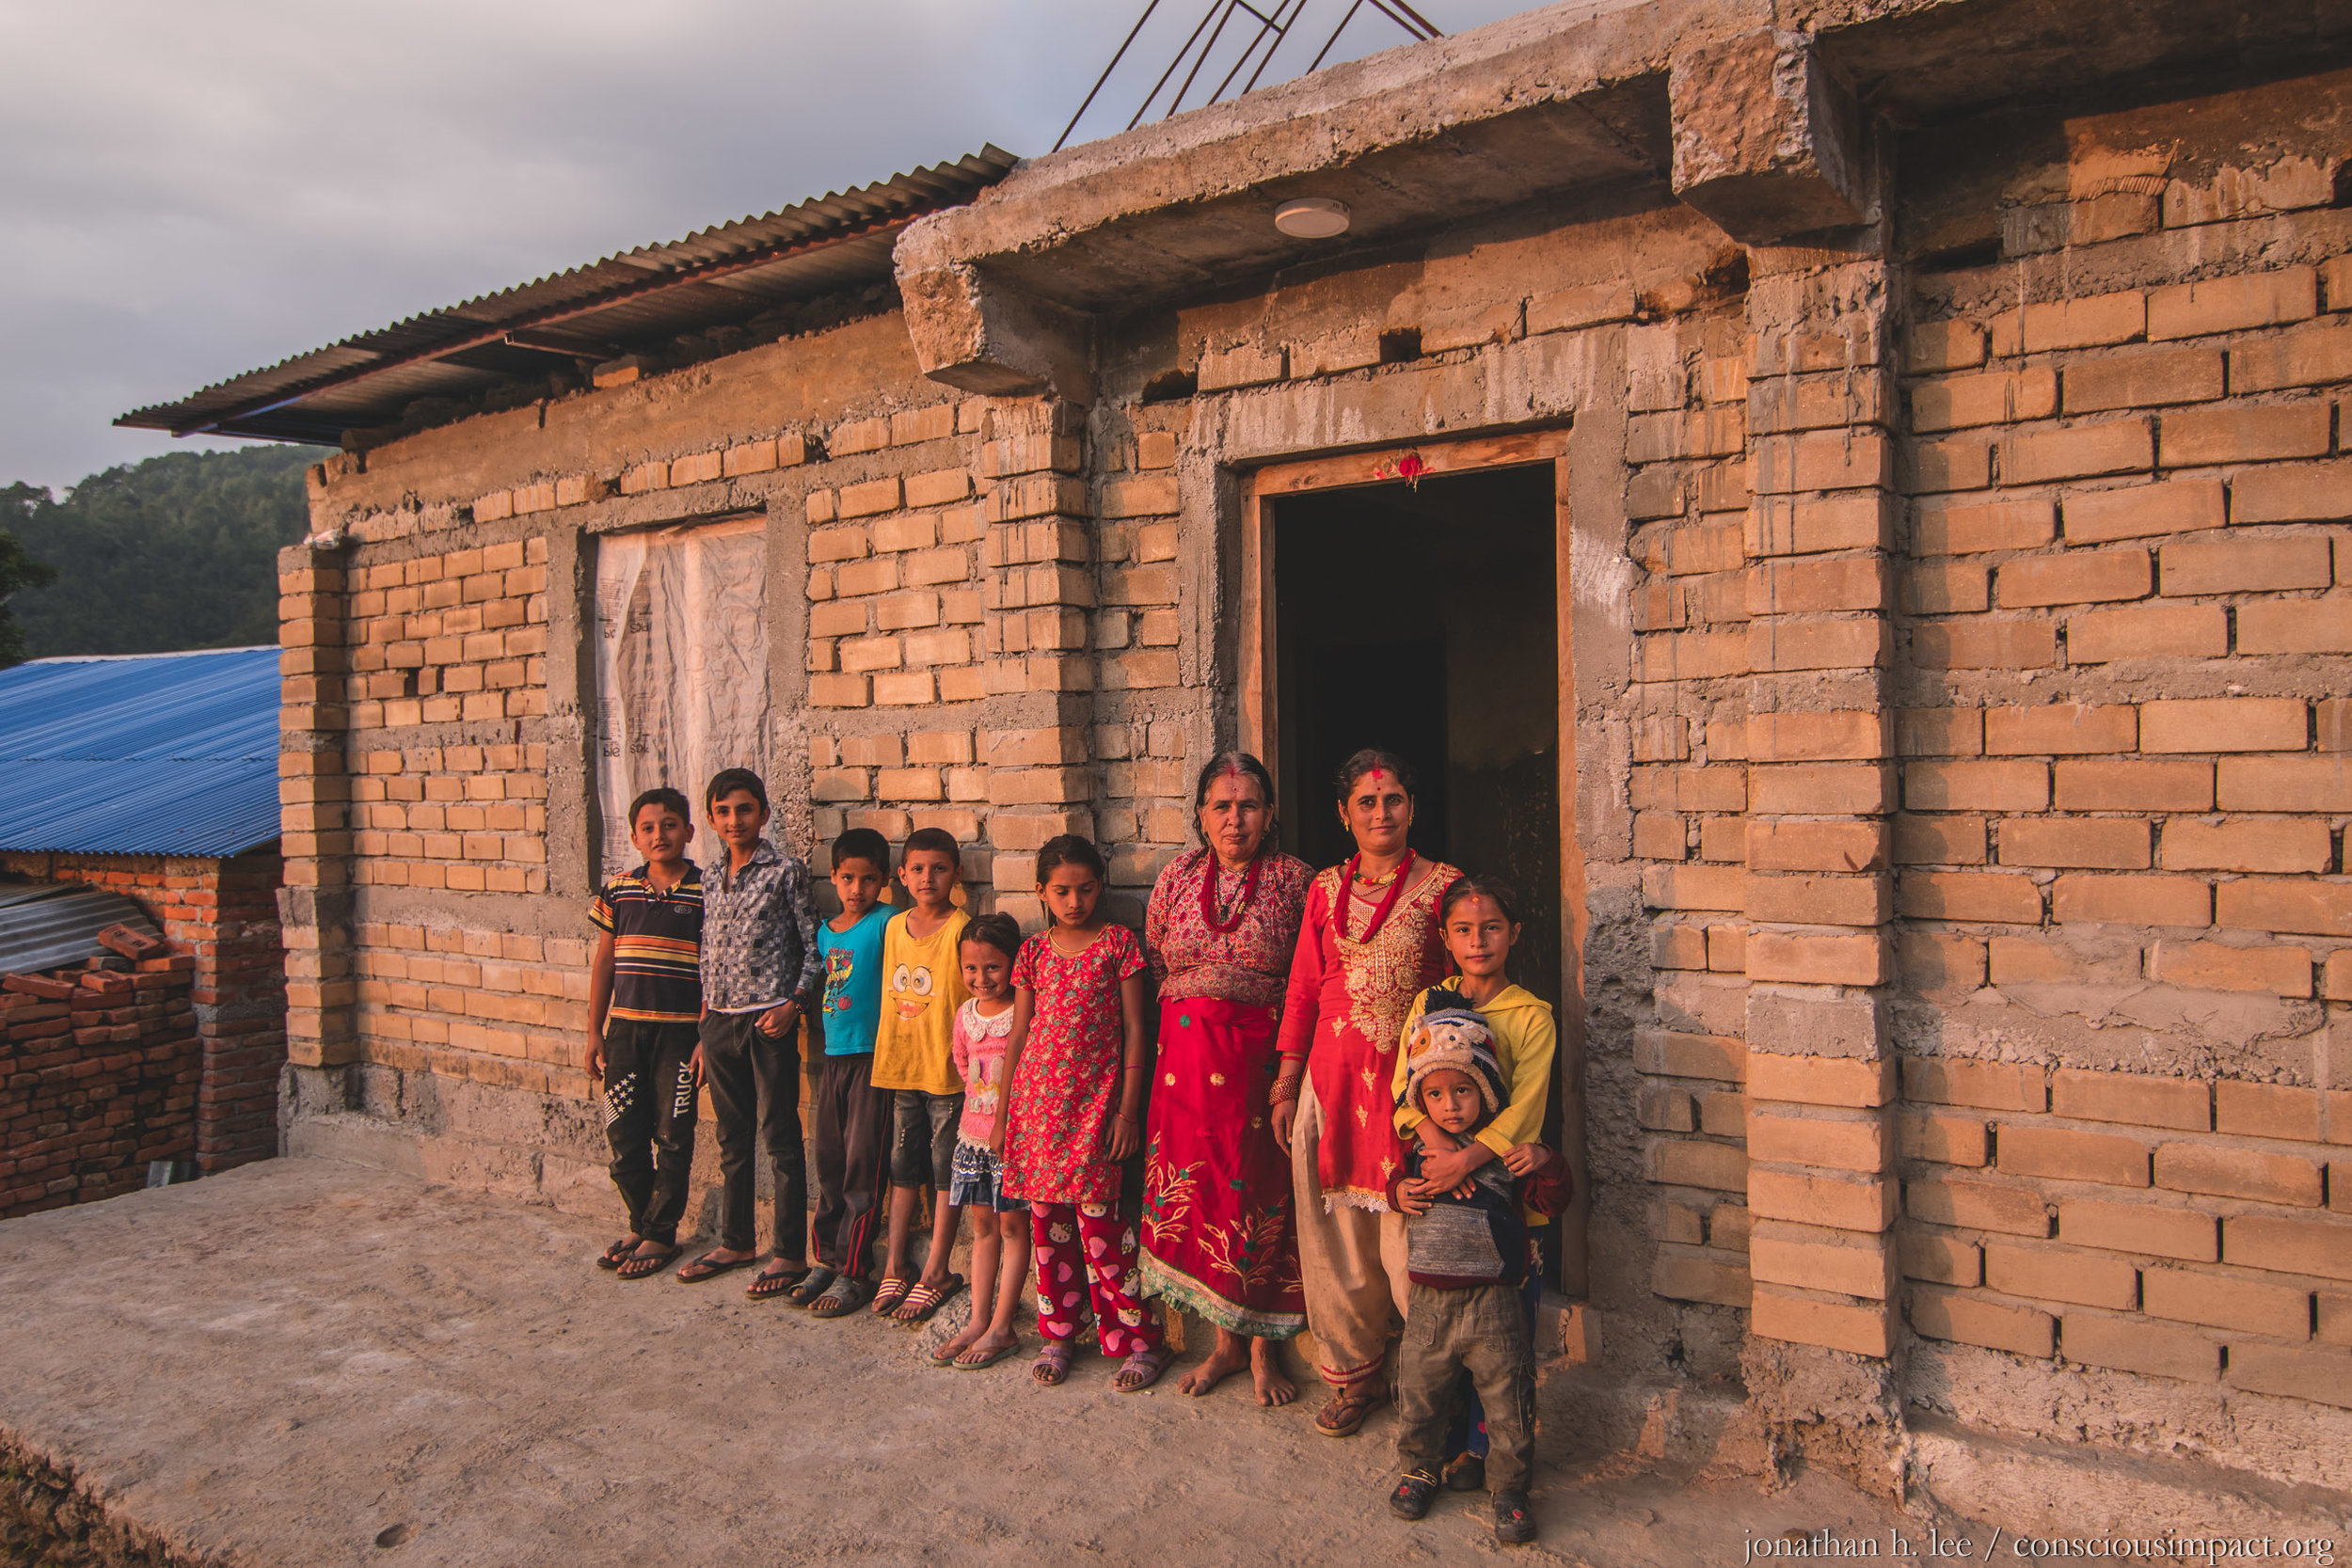 The Dahal Family in Bimire stands in front of their nearly completed 4-bedroom home. Photo by Jonathan H. Lee